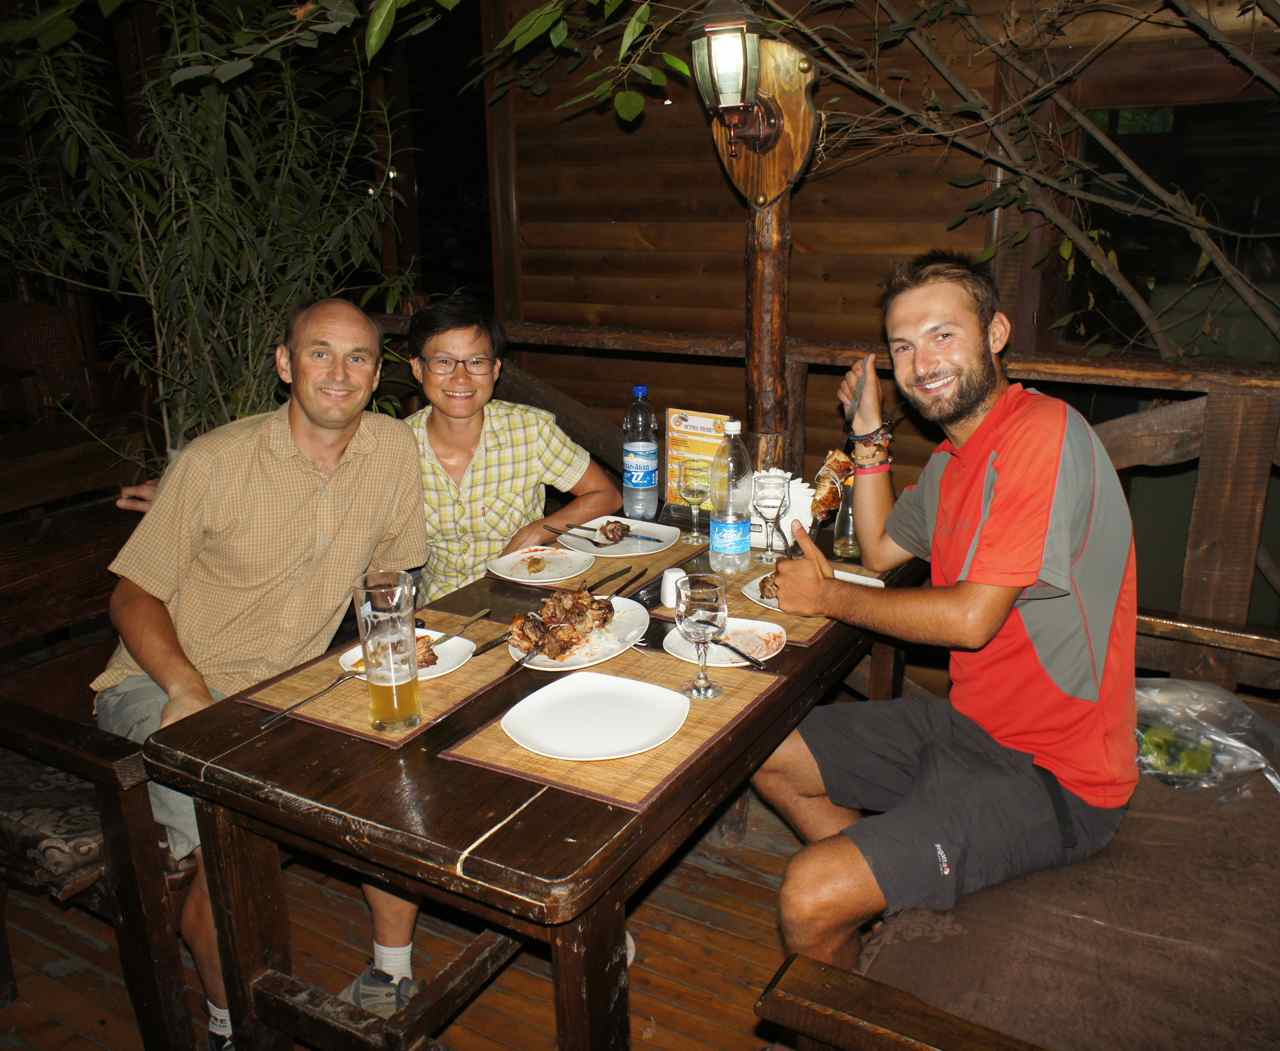 Having dinner with Bartek from Poland whom we have cycled with since Baku